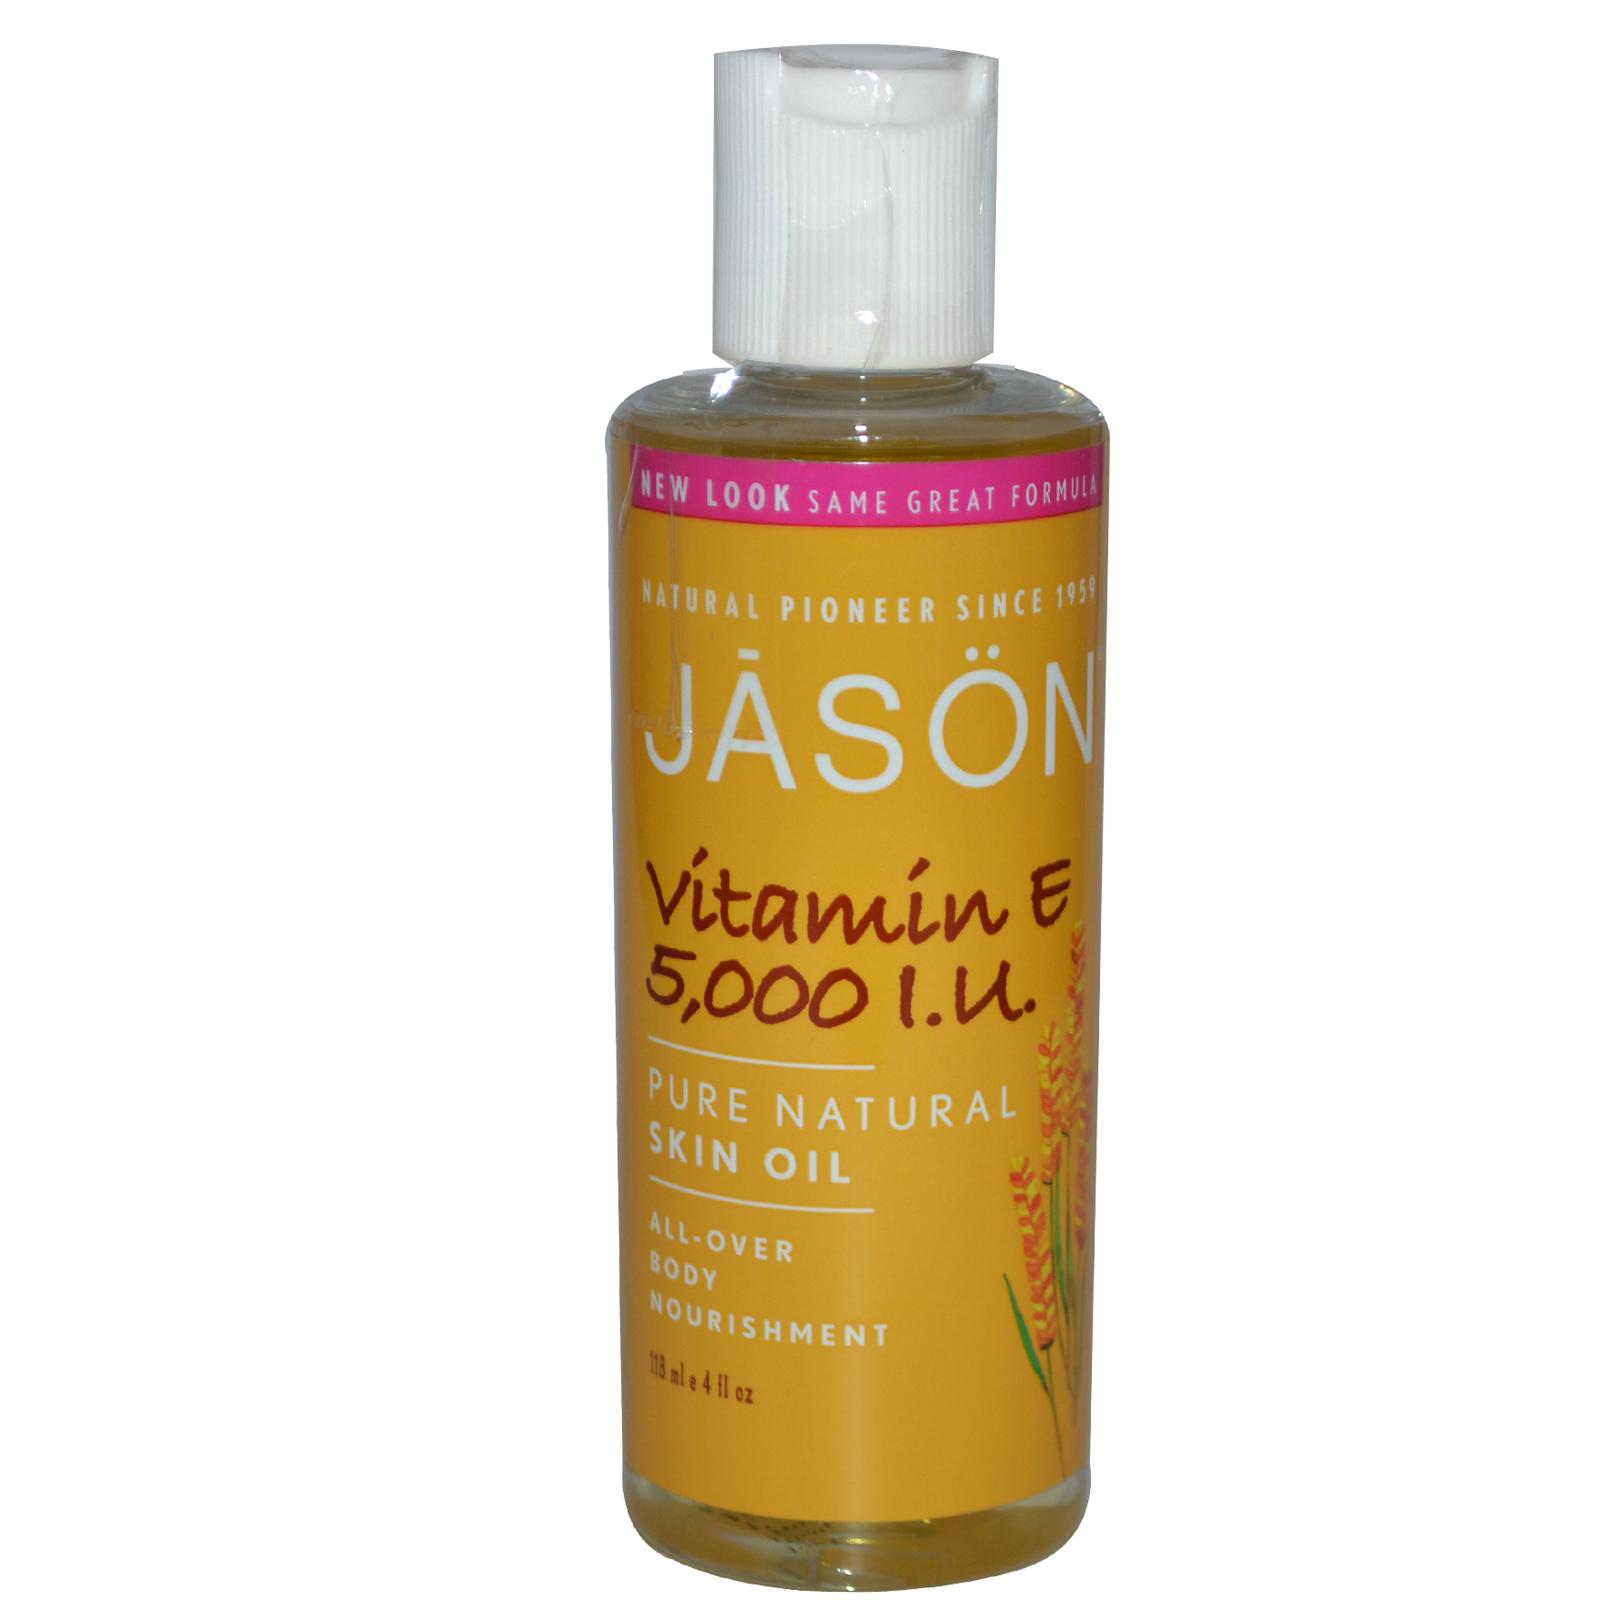 Масло Jason Natural, Vitamin E, 5,000 I.U. Pure Natural Skin Oil (118 ml)